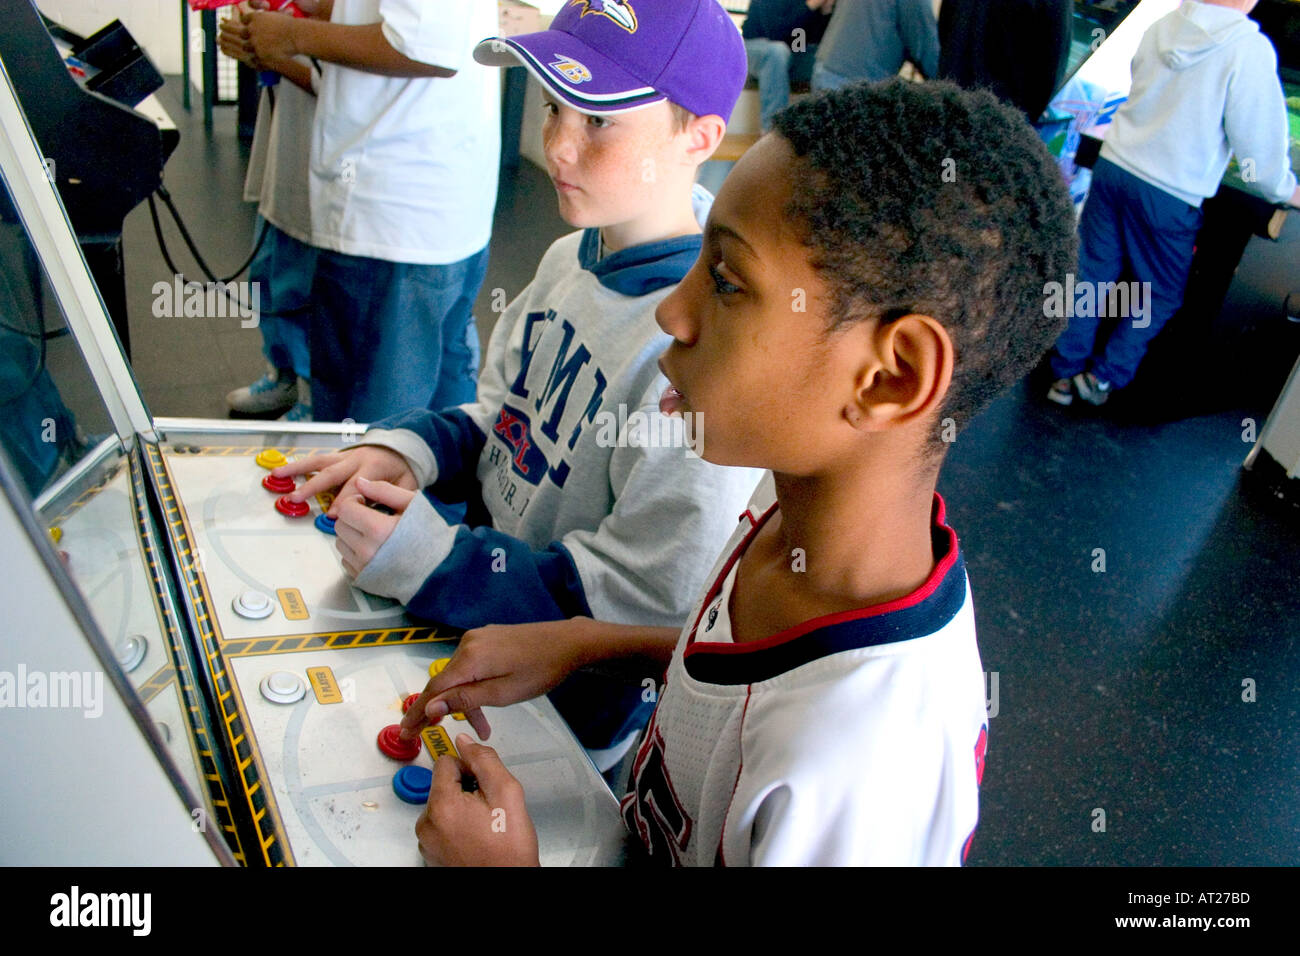 Friends age 10 playing video games developing their eye hand coordination. St Paul Minnesota MN USA - Stock Image